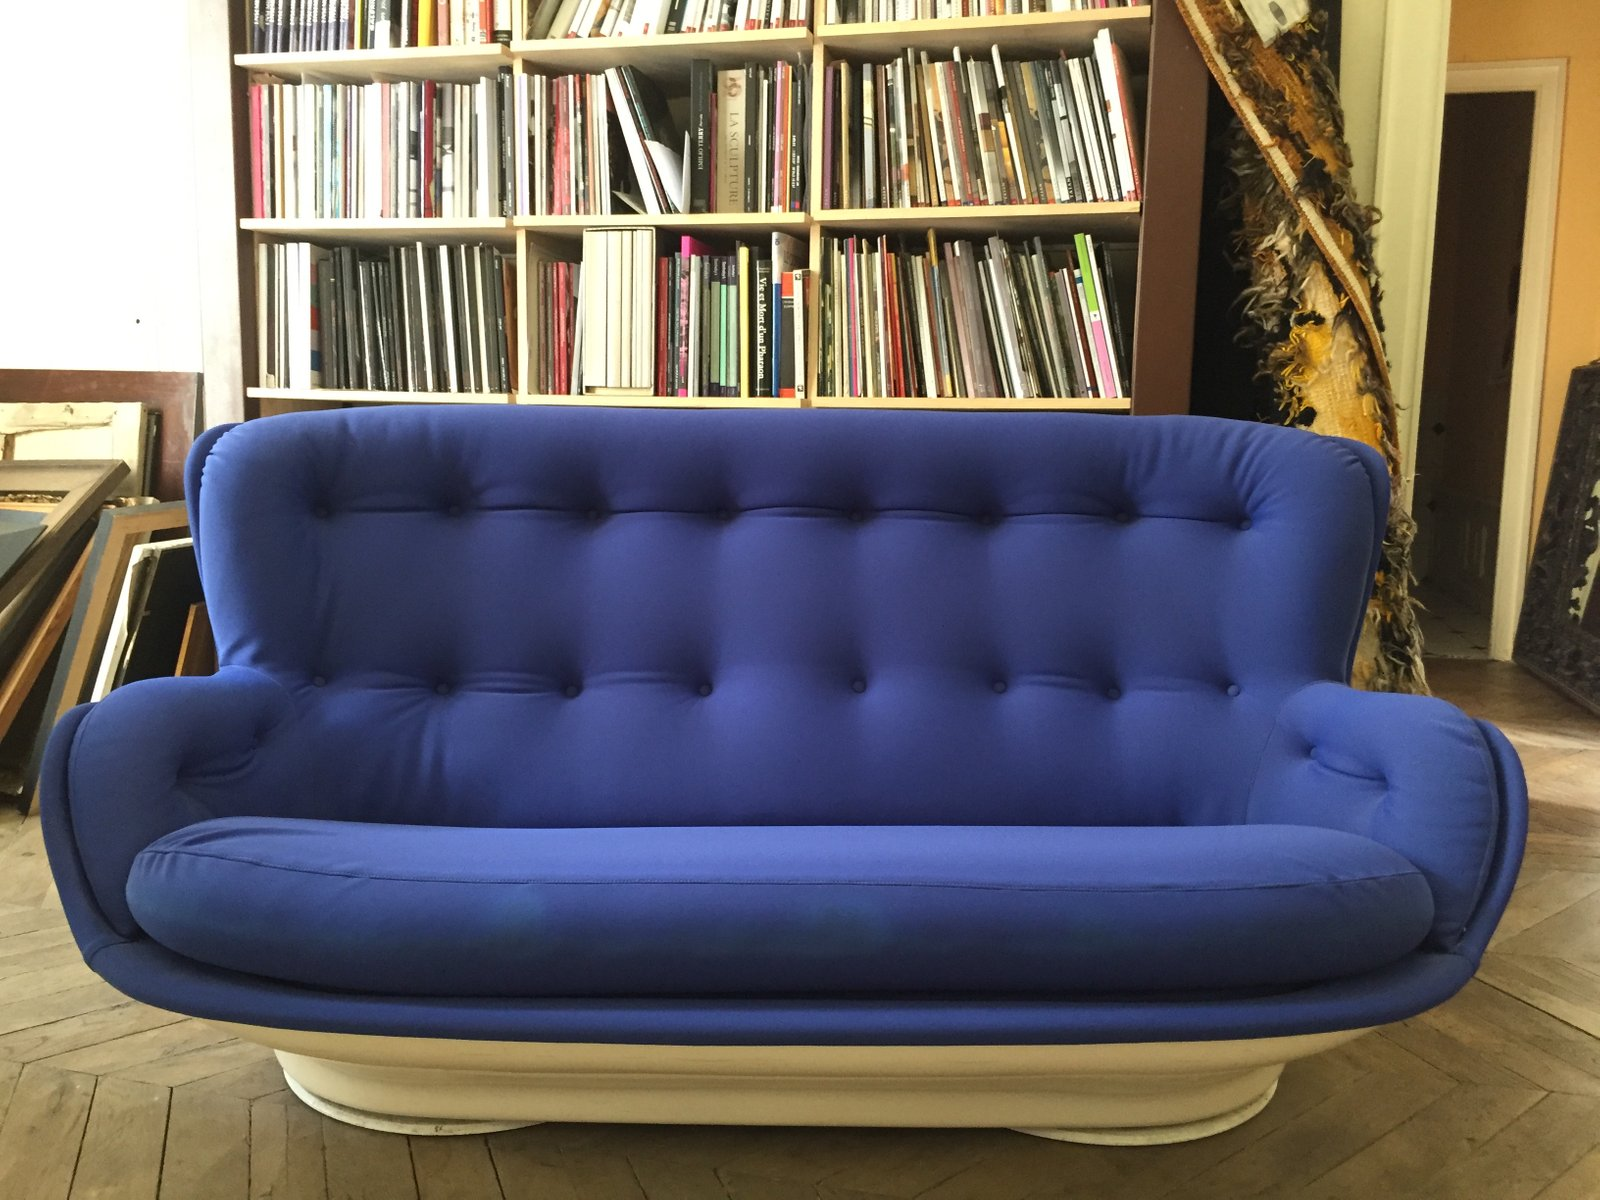 Sofa by Michel Cadestin for Airborne 1968 for sale at Pamono